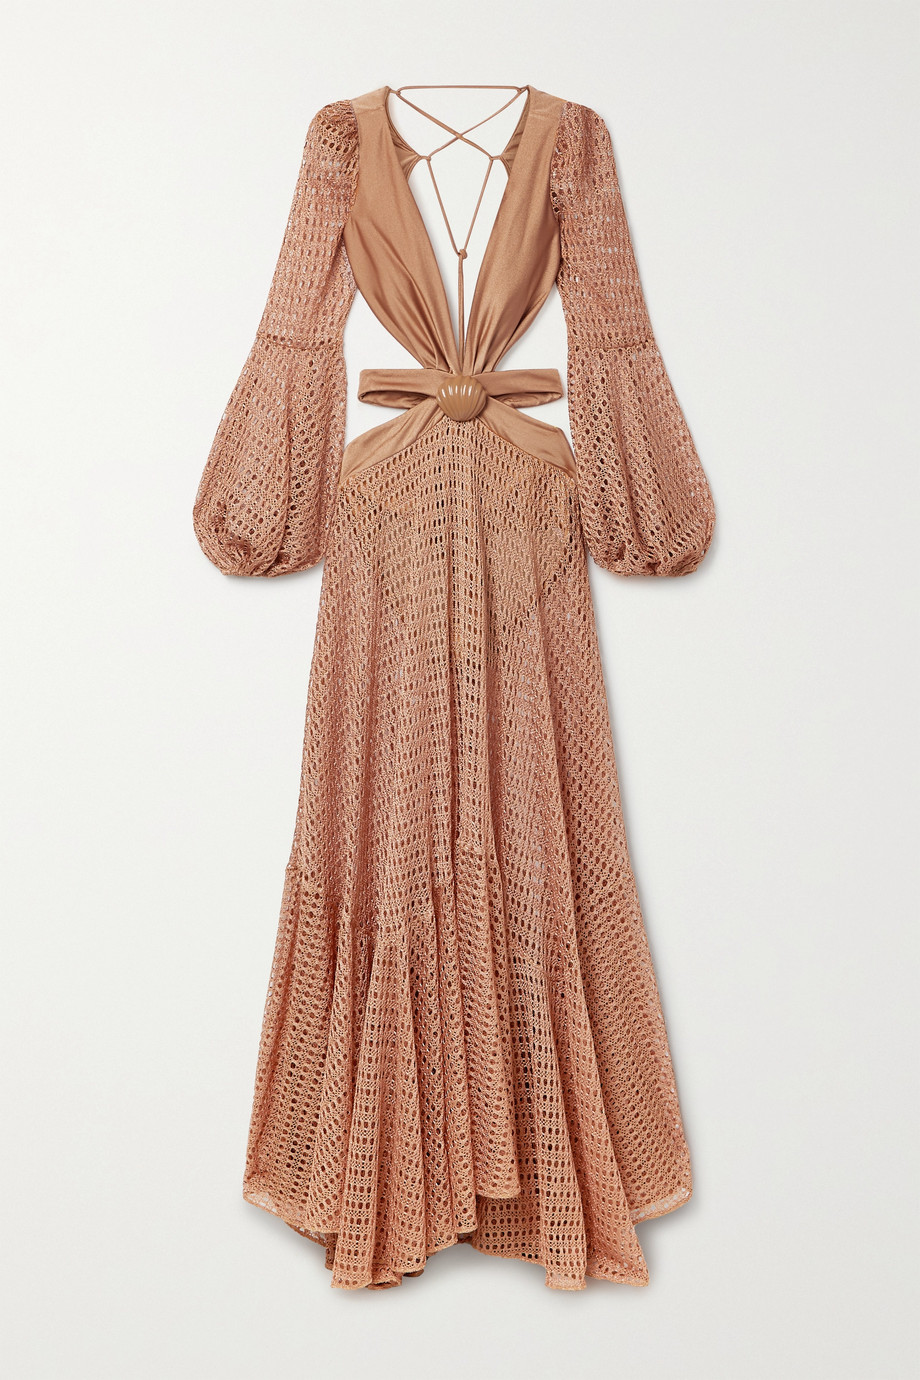 PatBO Embellished cutout stretch jersey-trimmed crochet-knit maxi dress